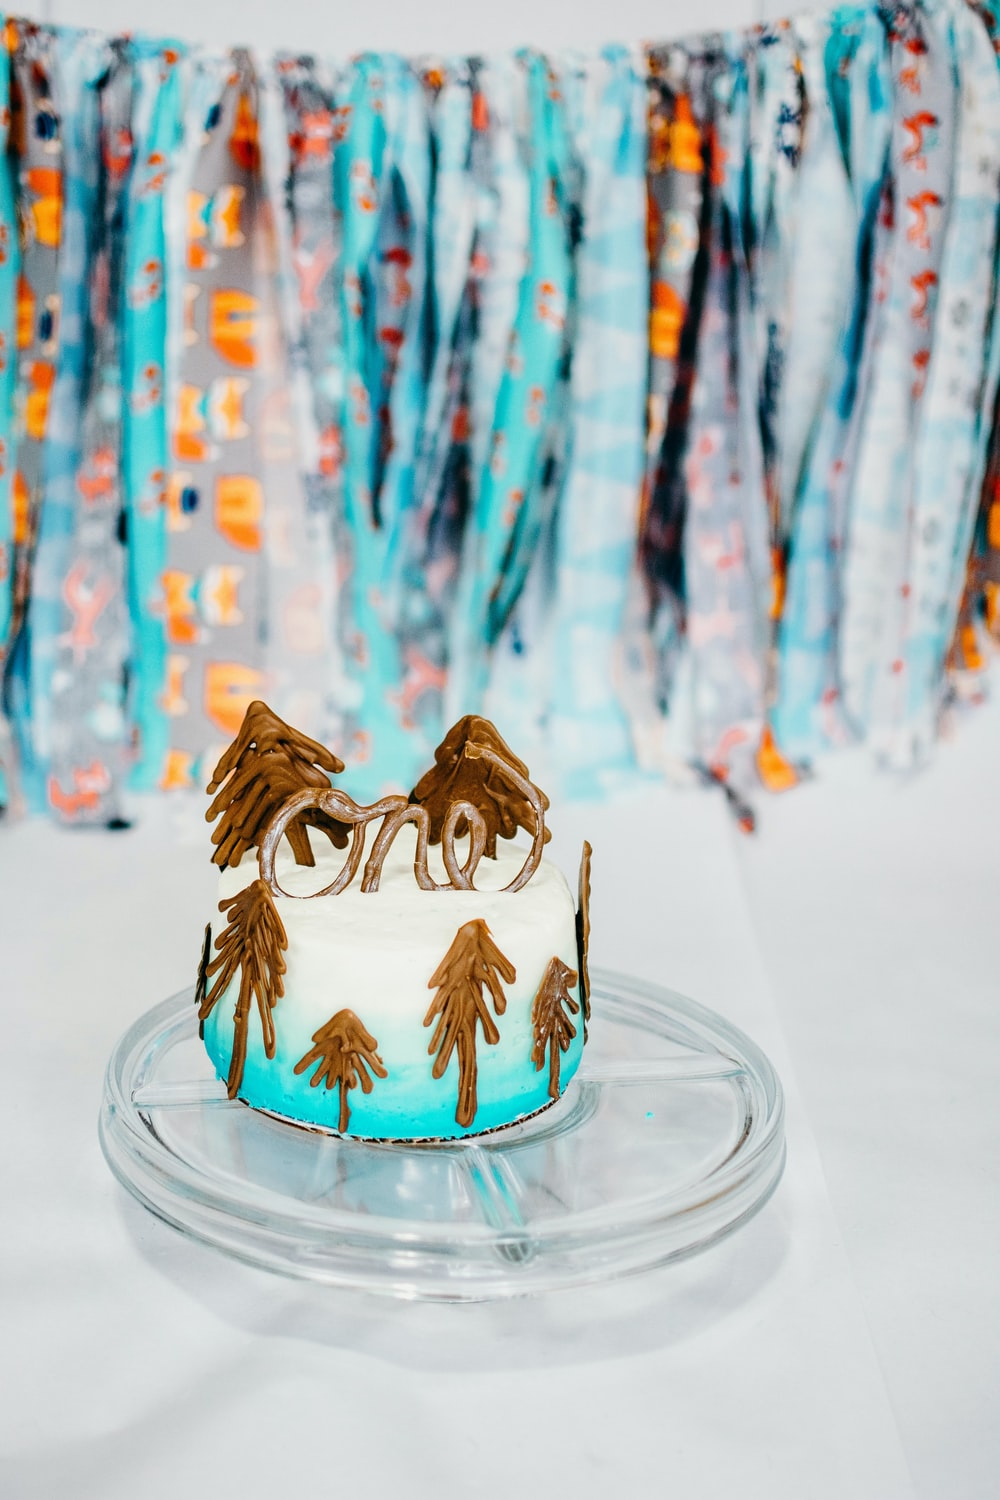 one layer of white and blue cake